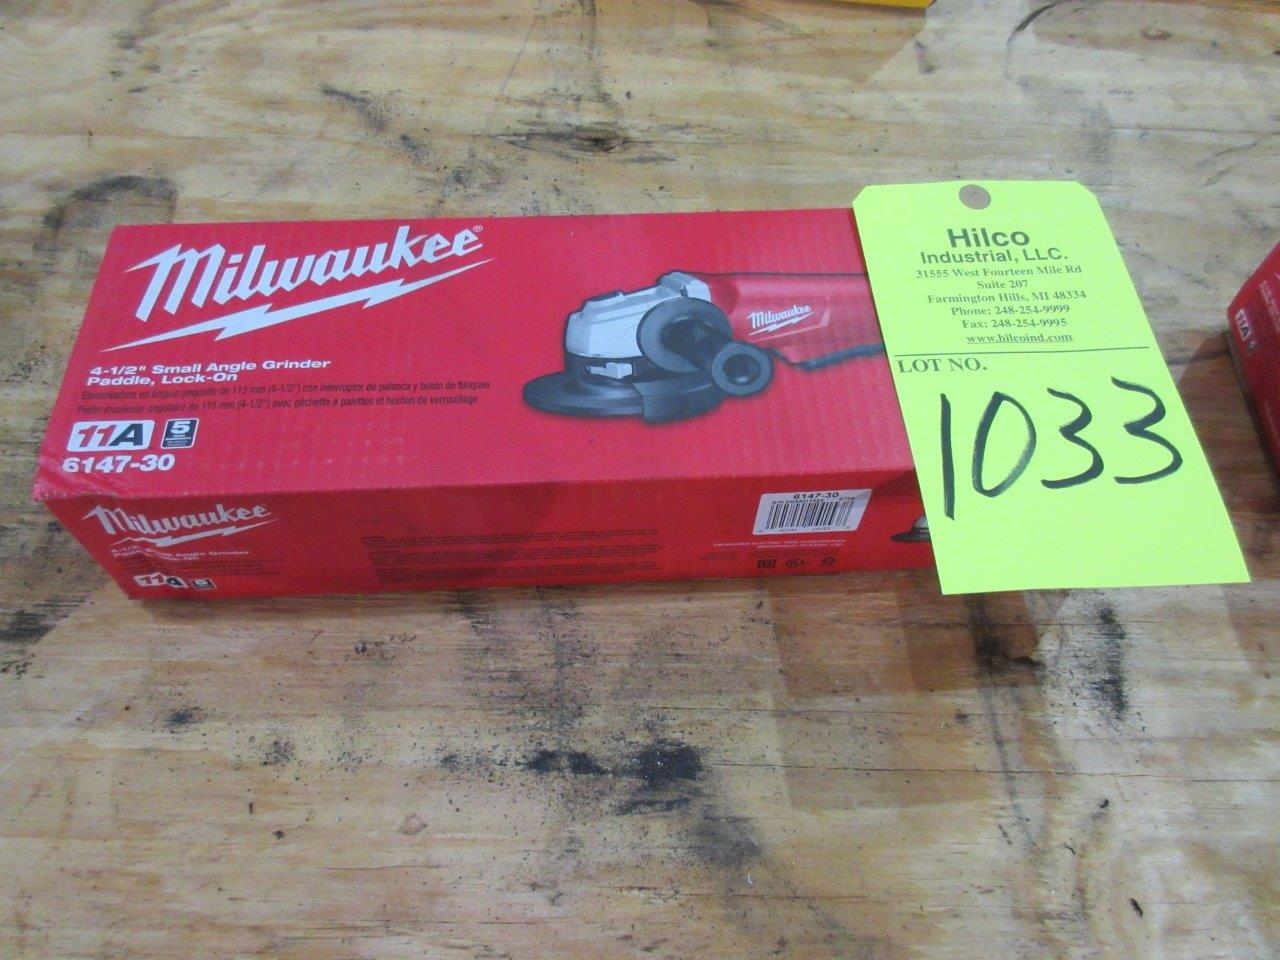 "Milwaukee Cat # 6147-30 New 4 1/2"" Angle Grinder"